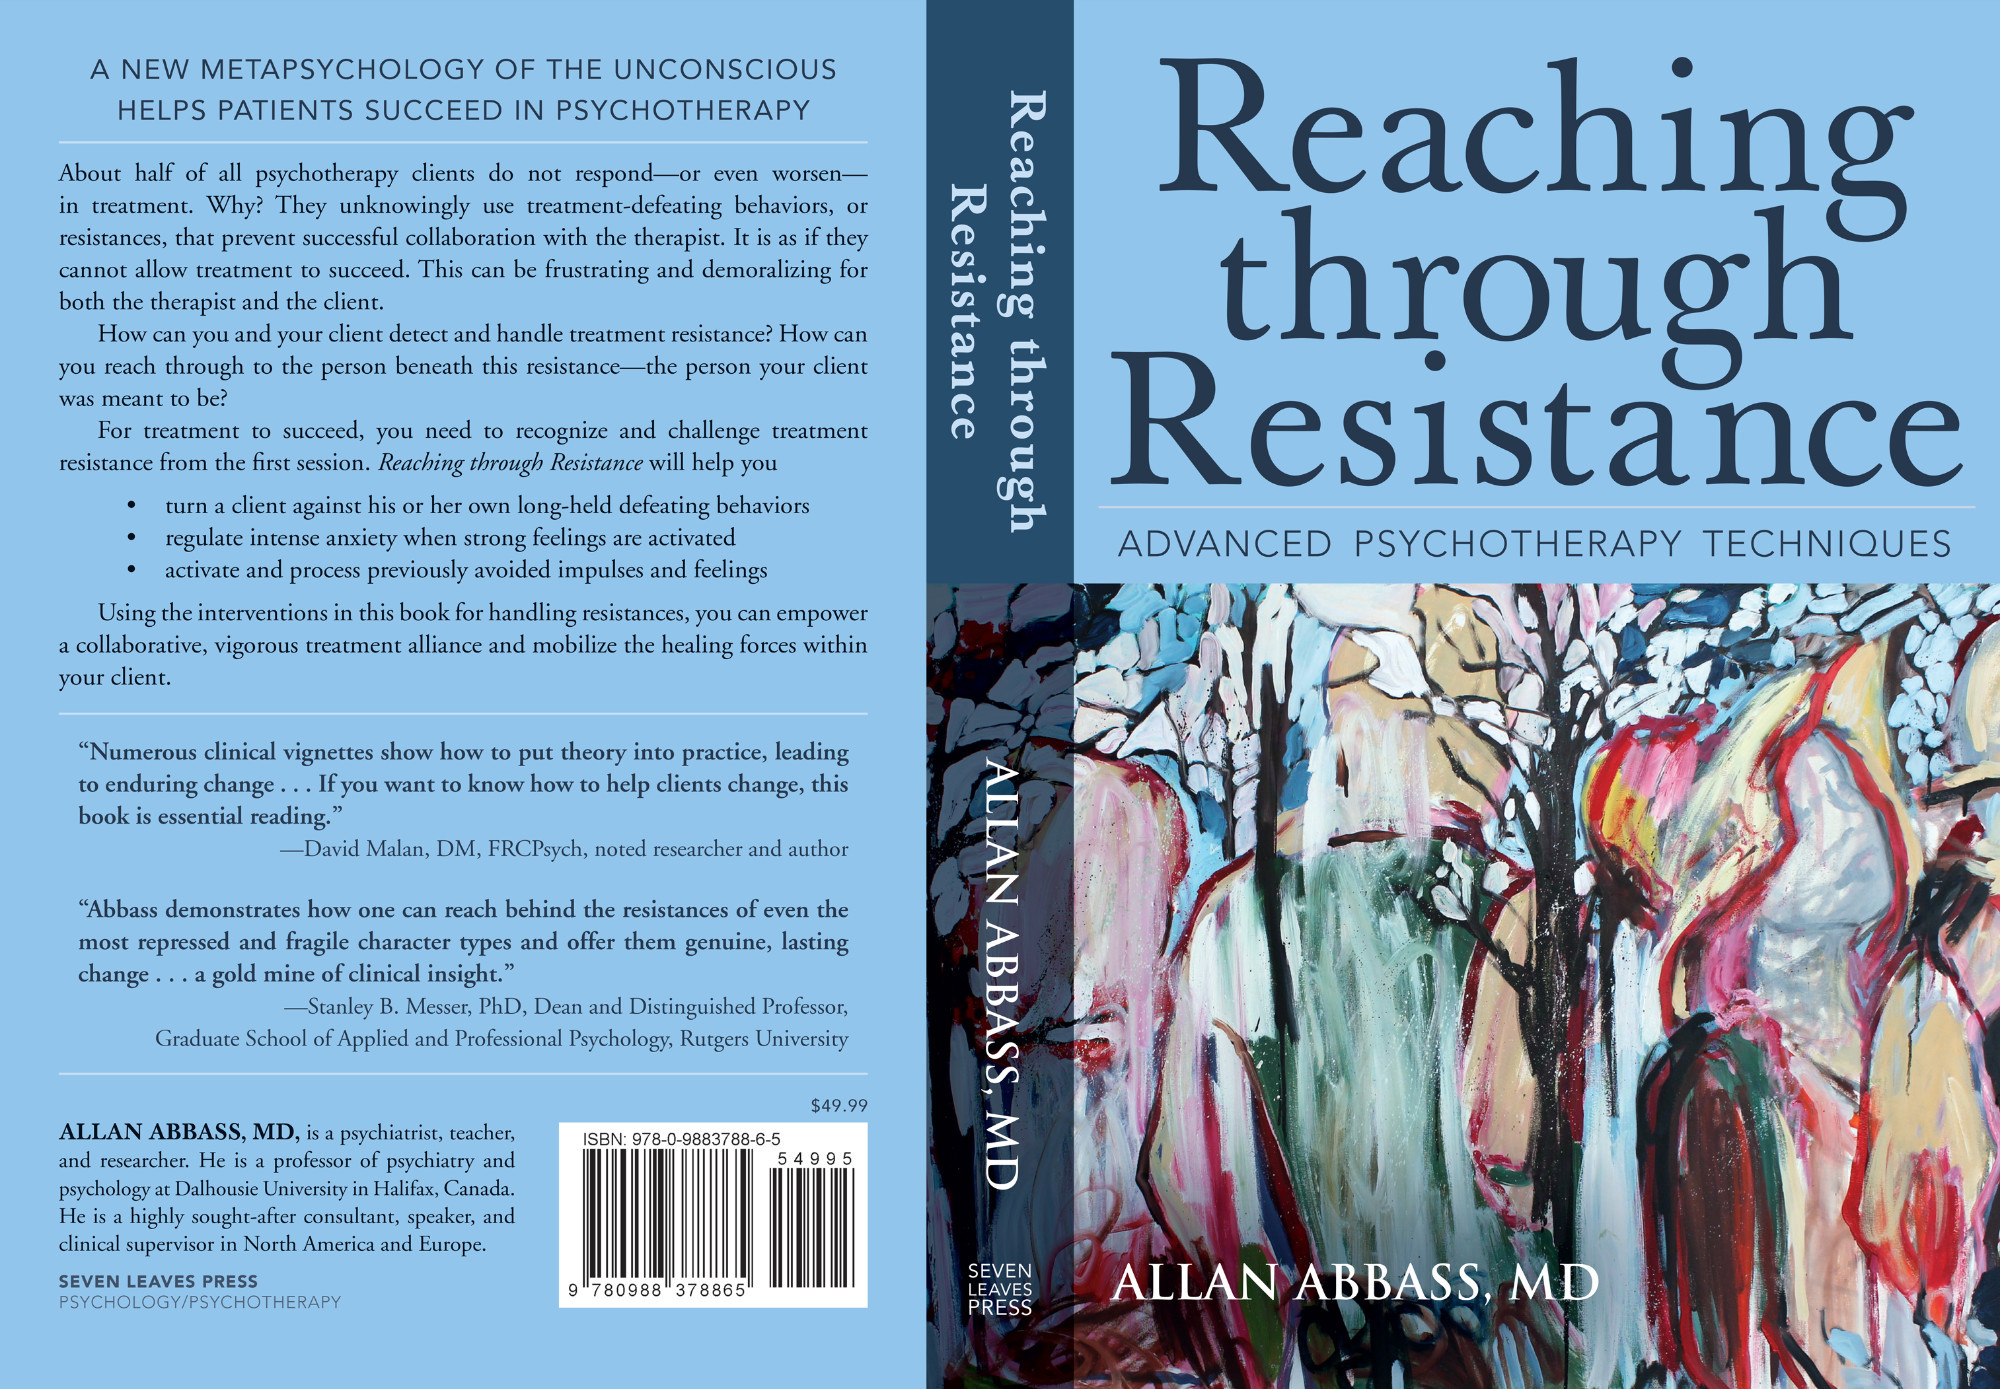 Abbass_ReachingthroughResistance_31215_569-137.jpg